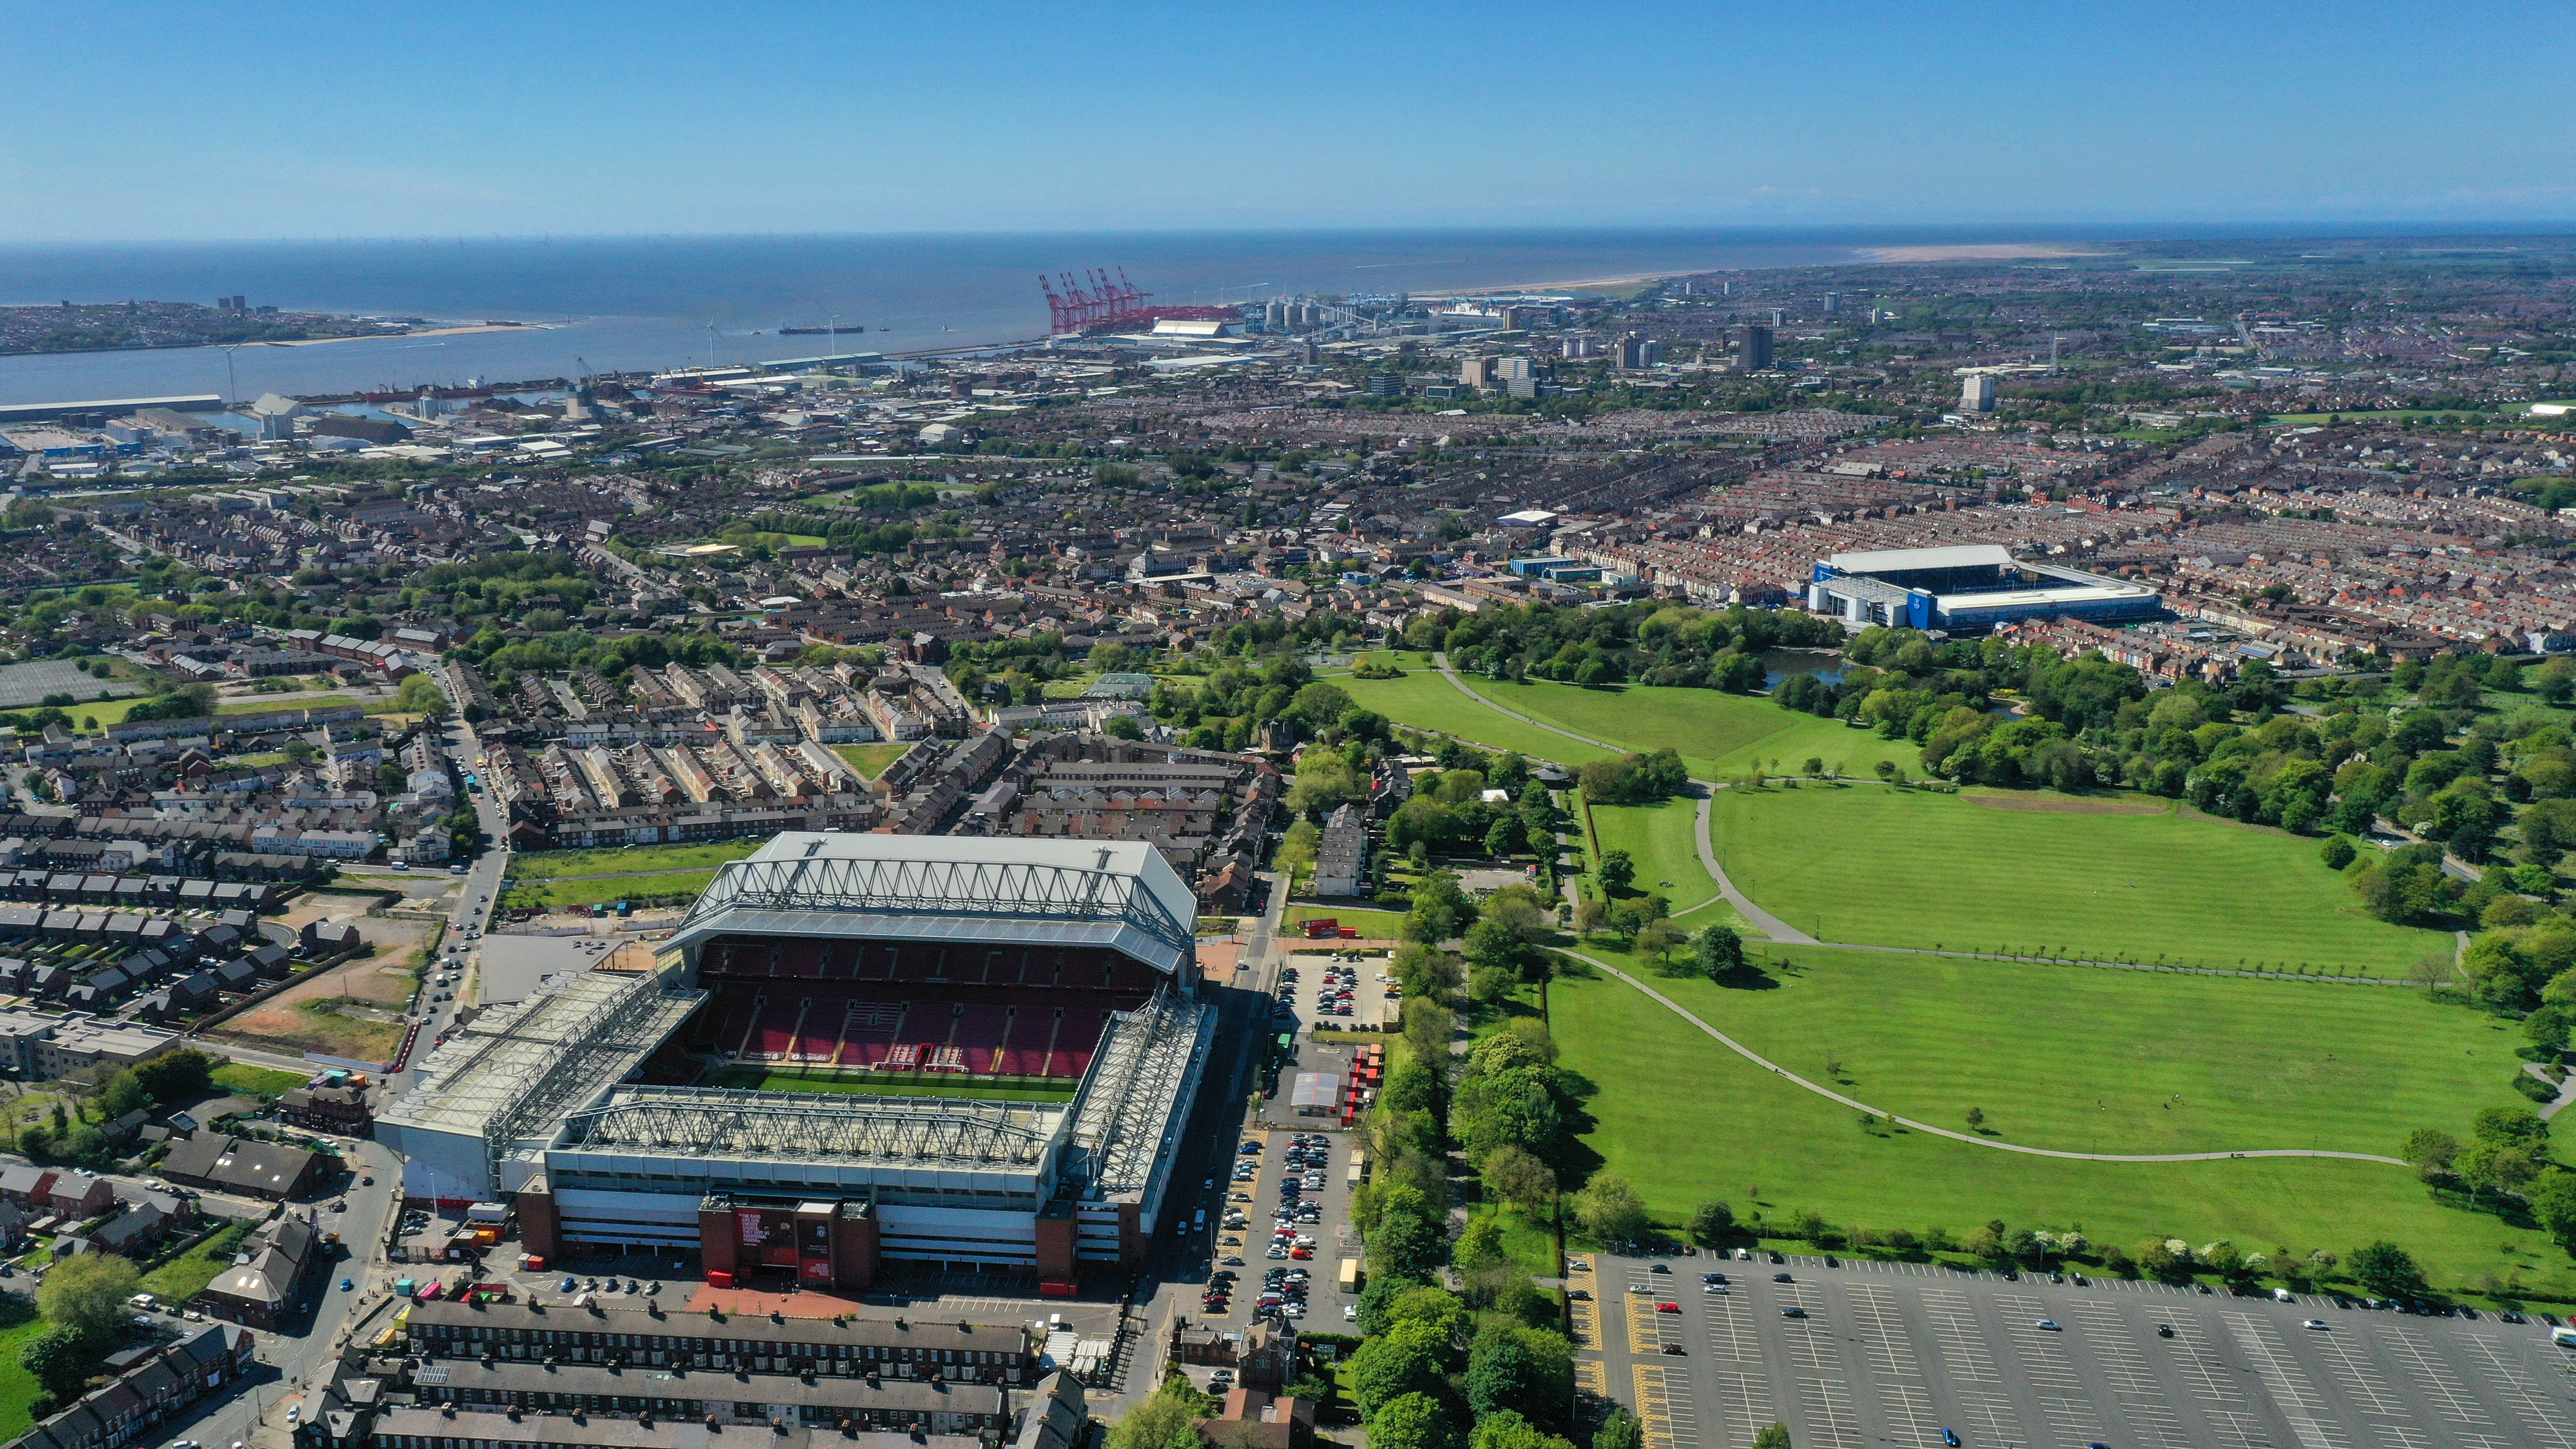 A general external aerial view of Anfield, home stadium of Liverpool showing the close proximity of Goodison Park